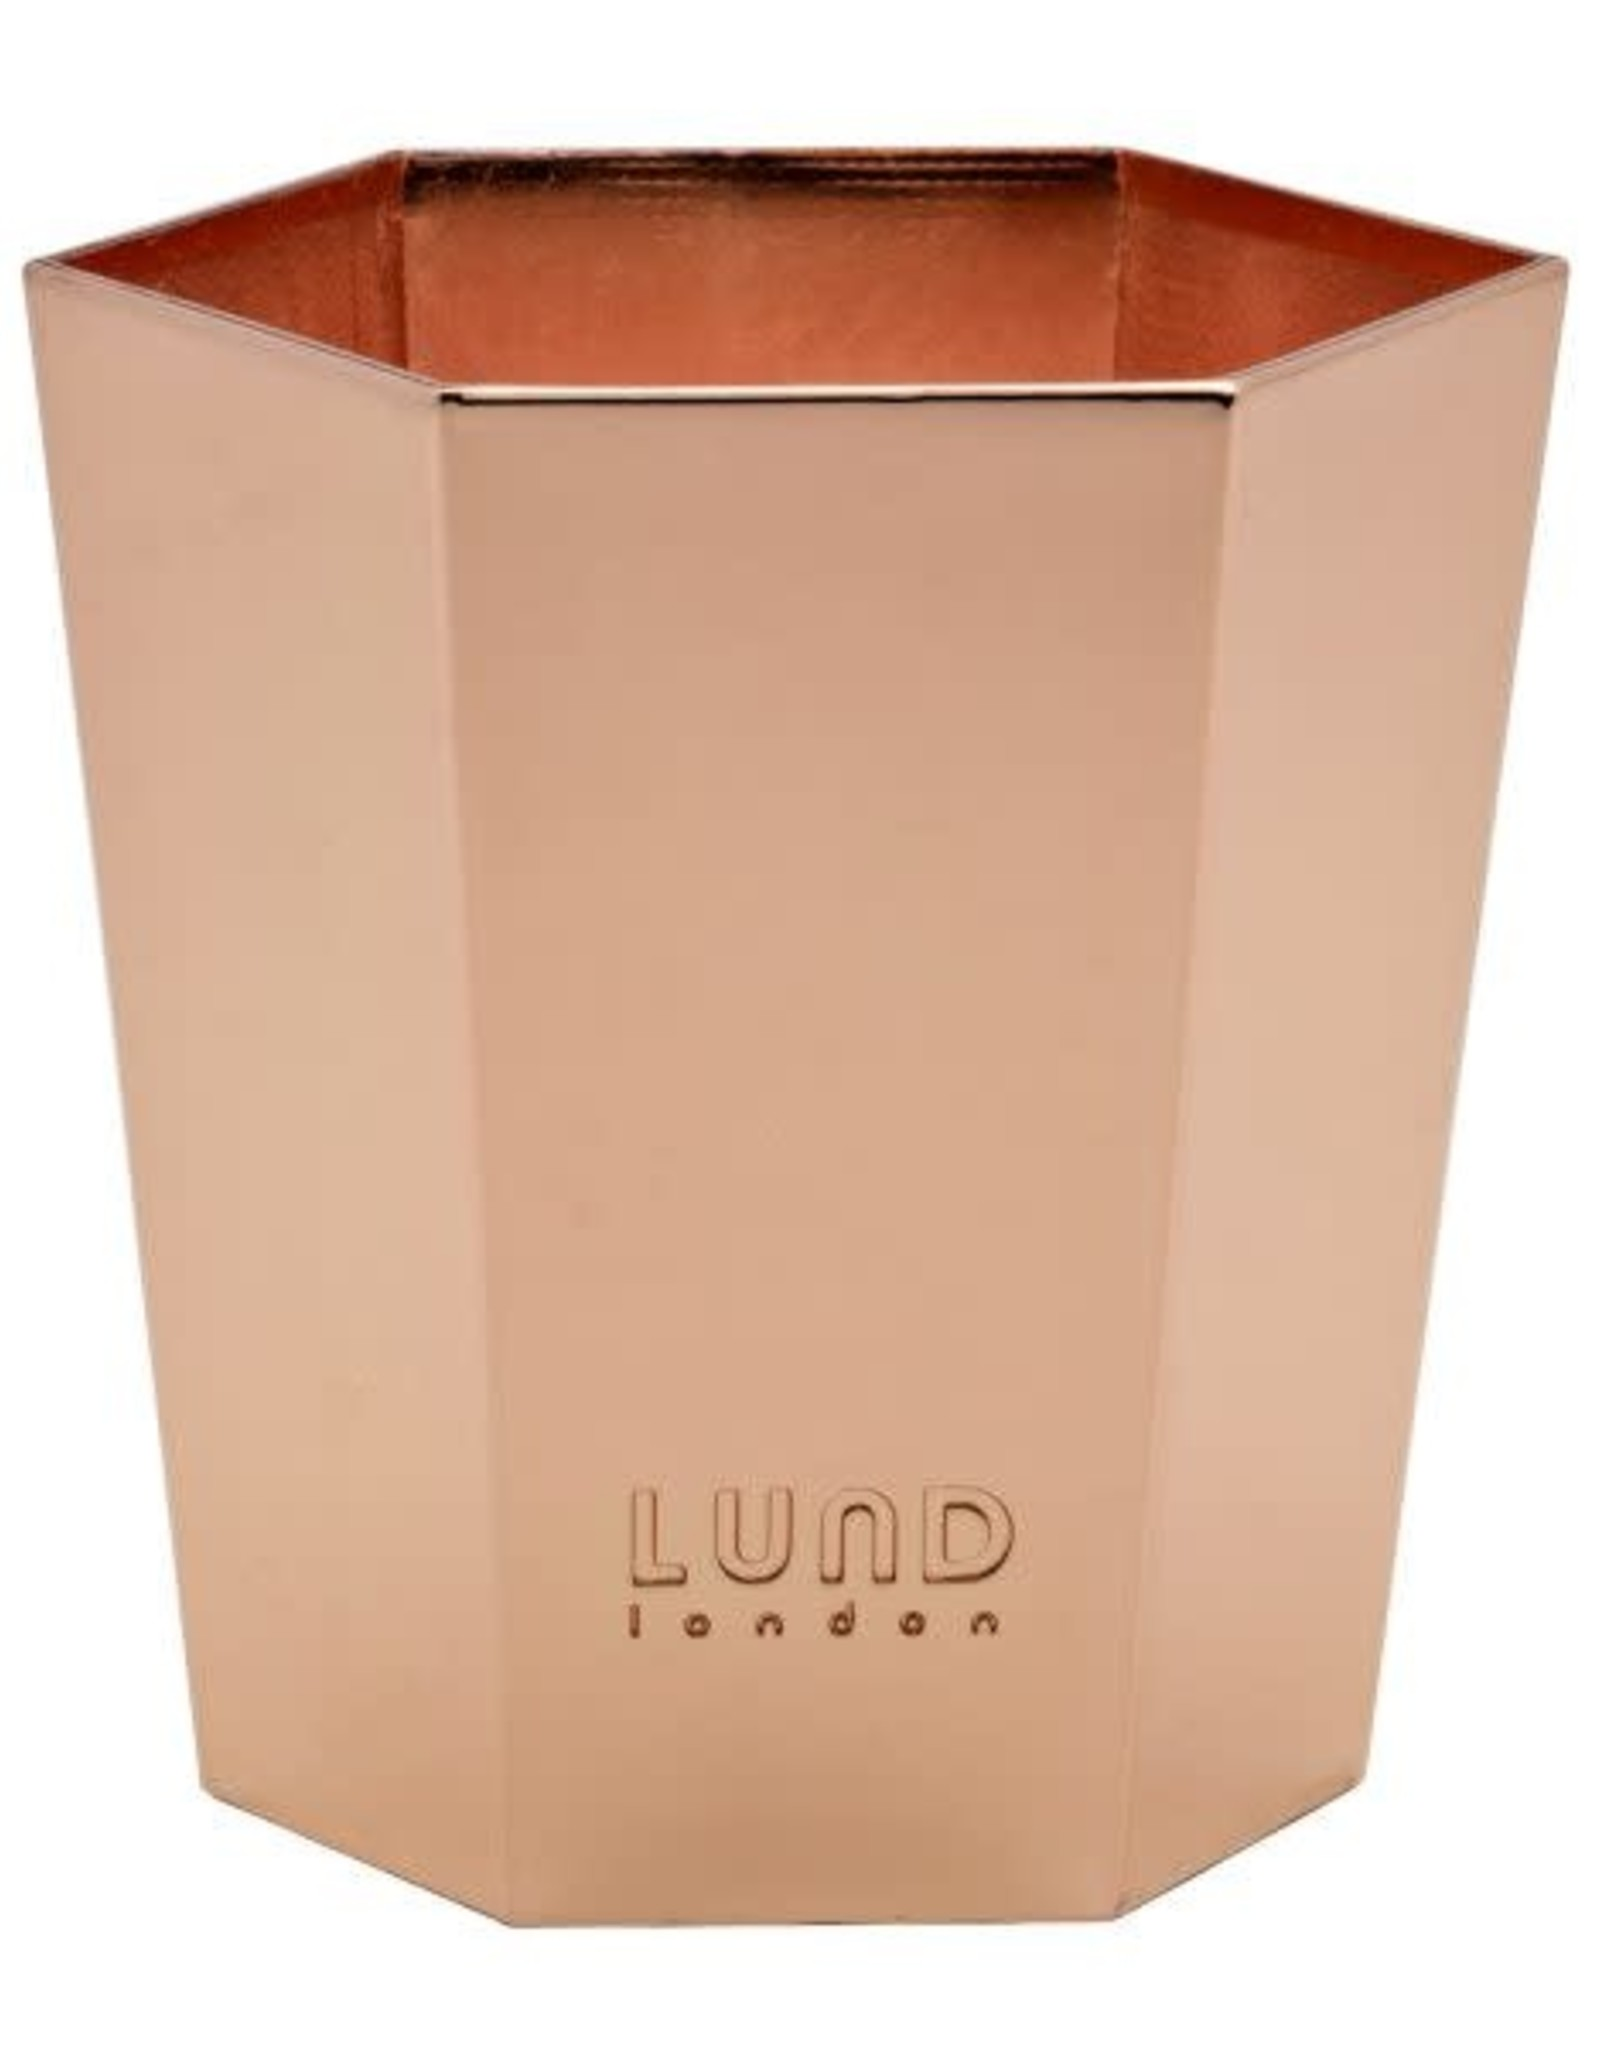 Lund Luxe Lidded Candle